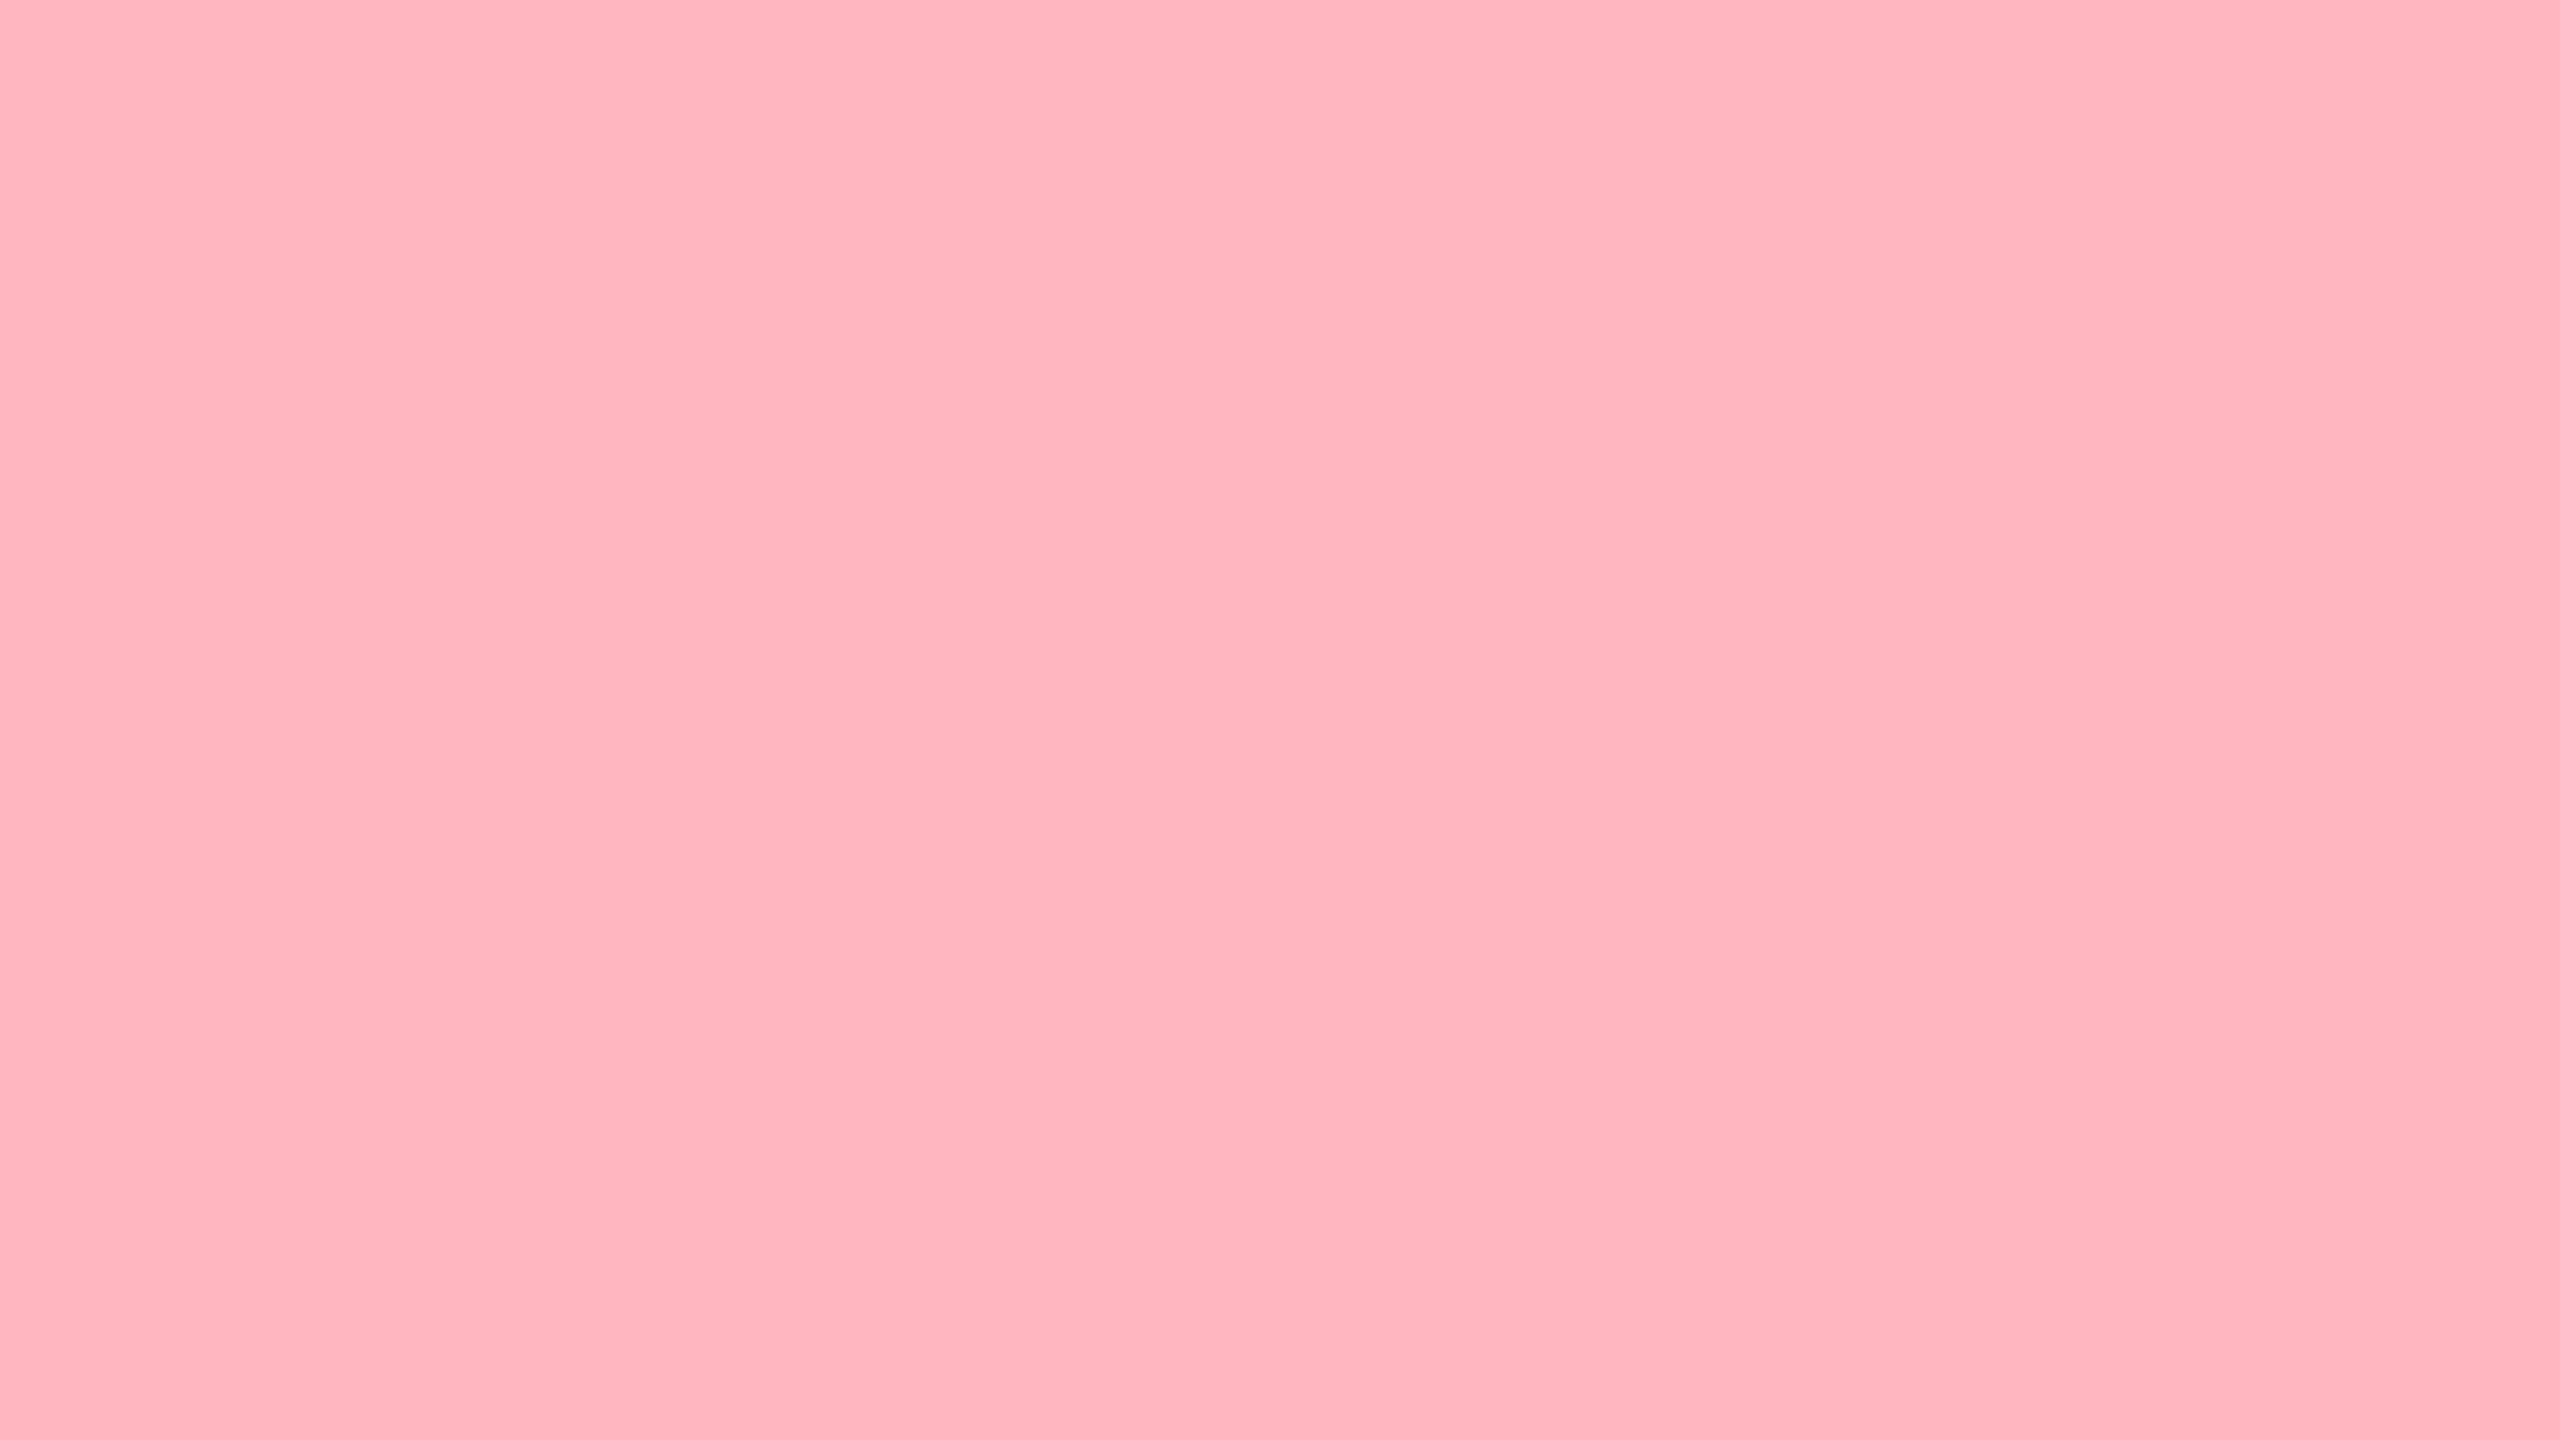 Background Tumblr Plain Pink S Wallpaper